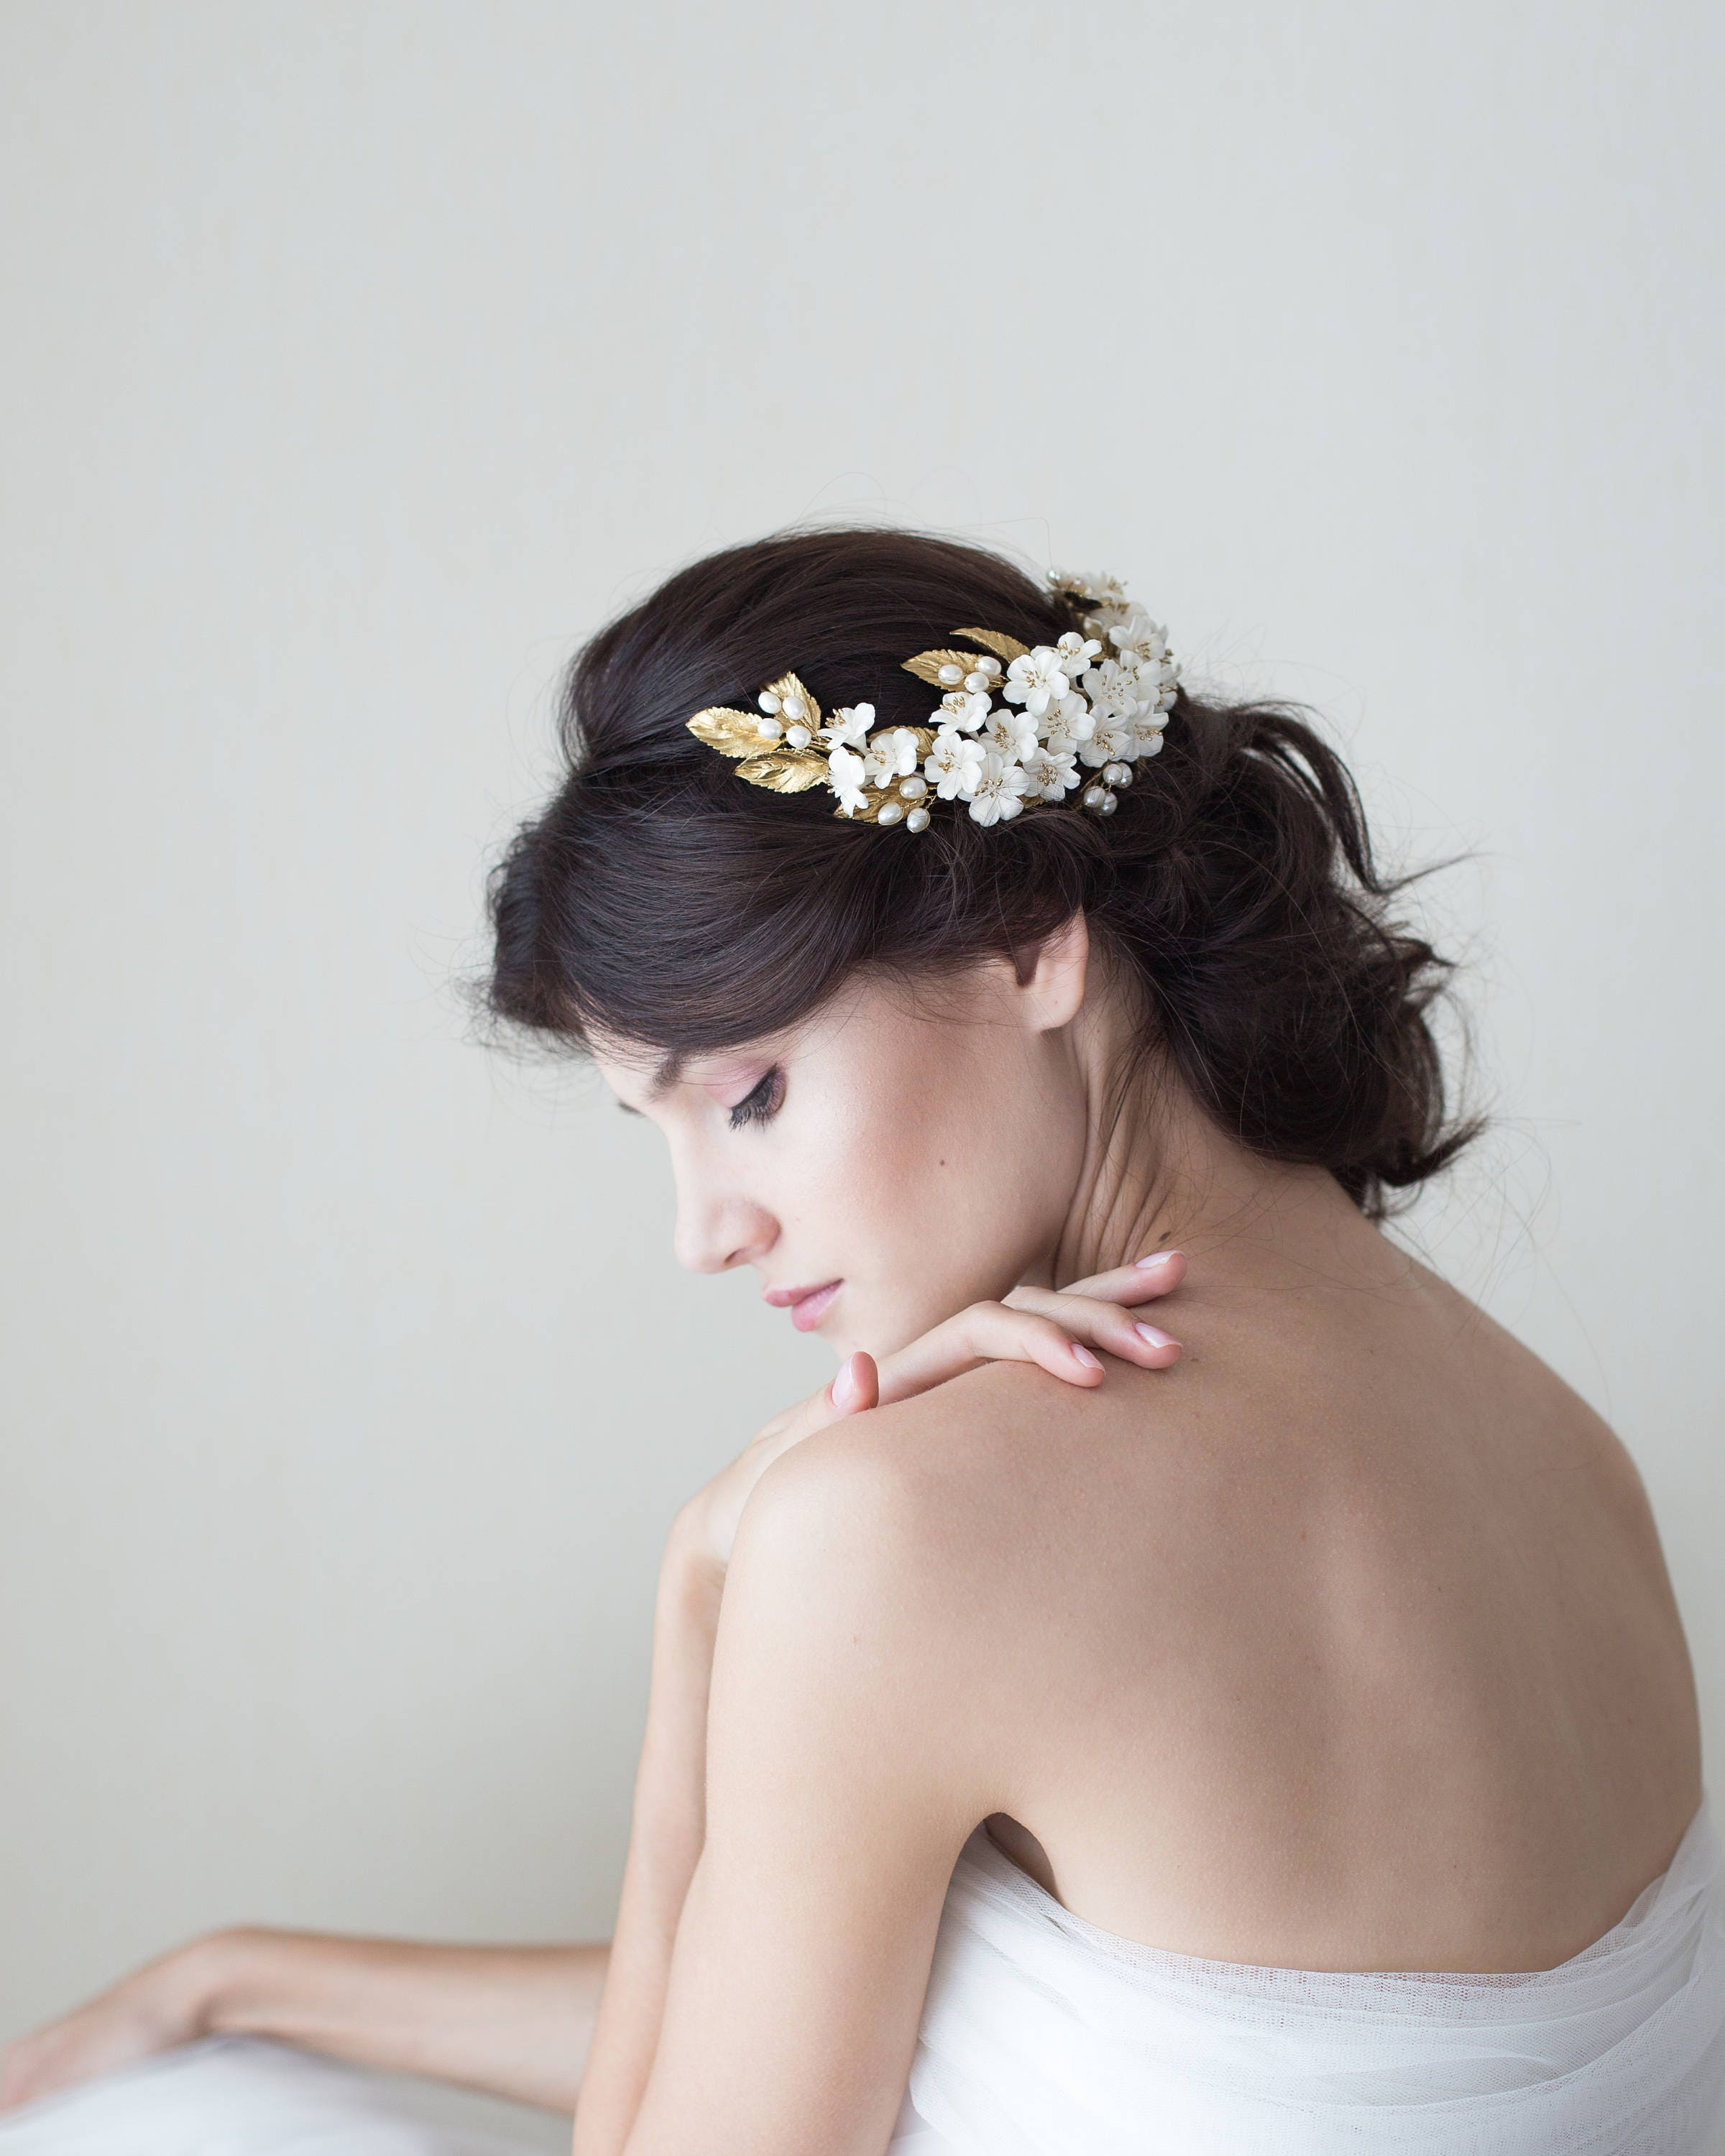 Headpieces For Weddings Australia: Cherry Blossom Headpiece. Bridal Headpiece. Bridal Crown